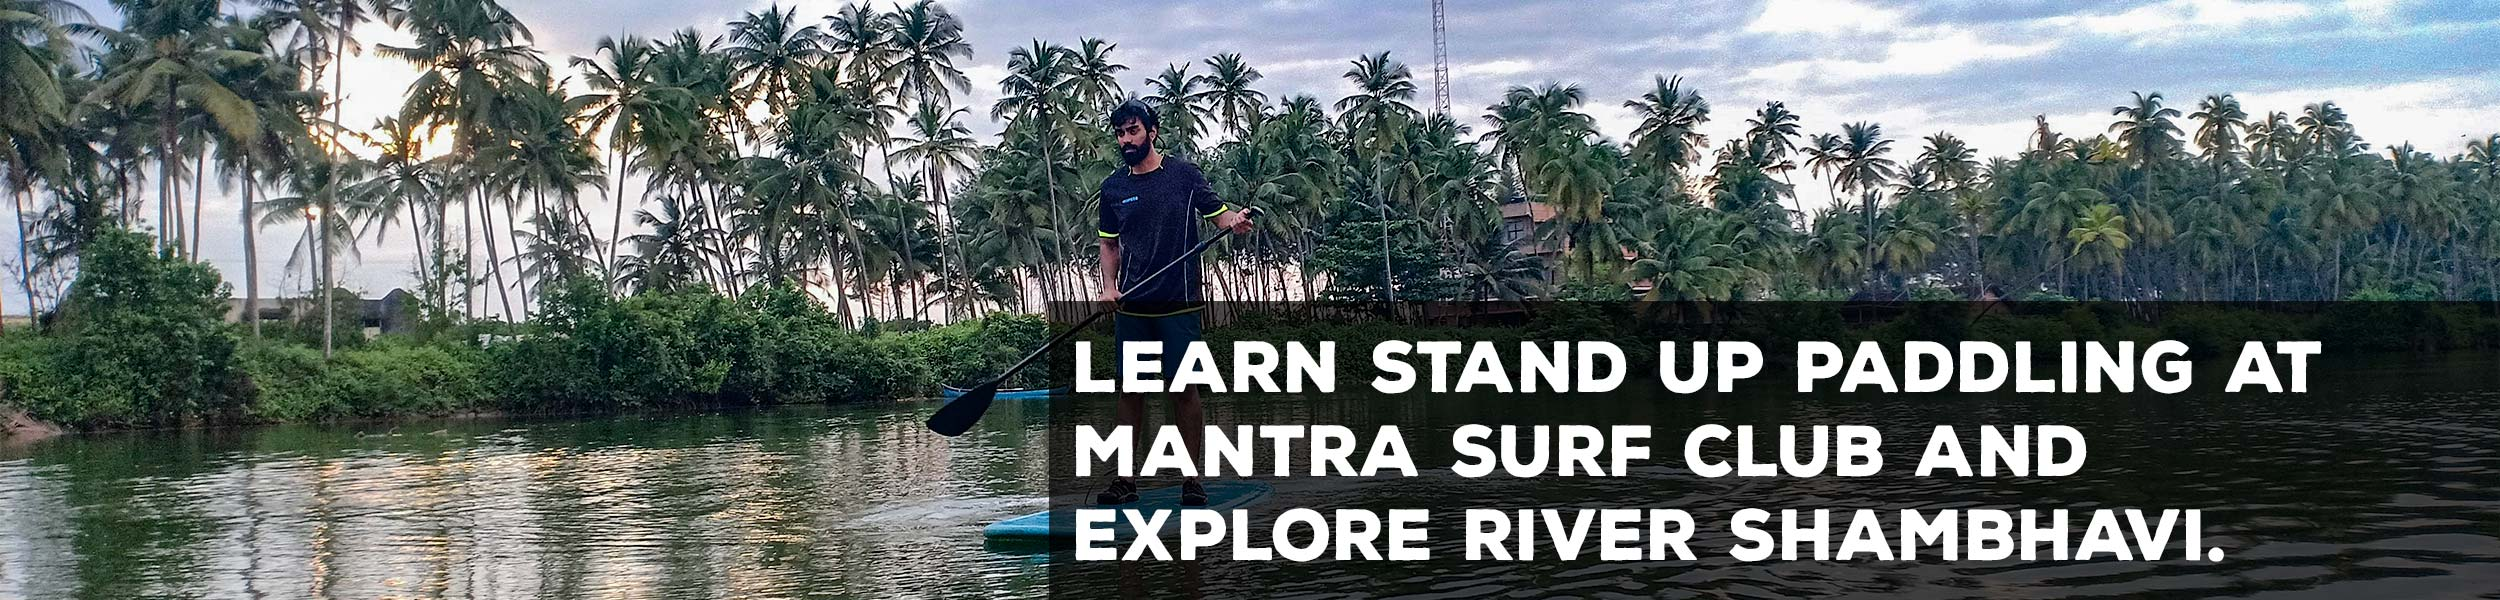 Learn to Stand-up Paddle and paddle around Nadikudru Island on River Shambhavi at Mantra surf Club in Mulki, Mangalore near Manipal/Udupi in karnataka.